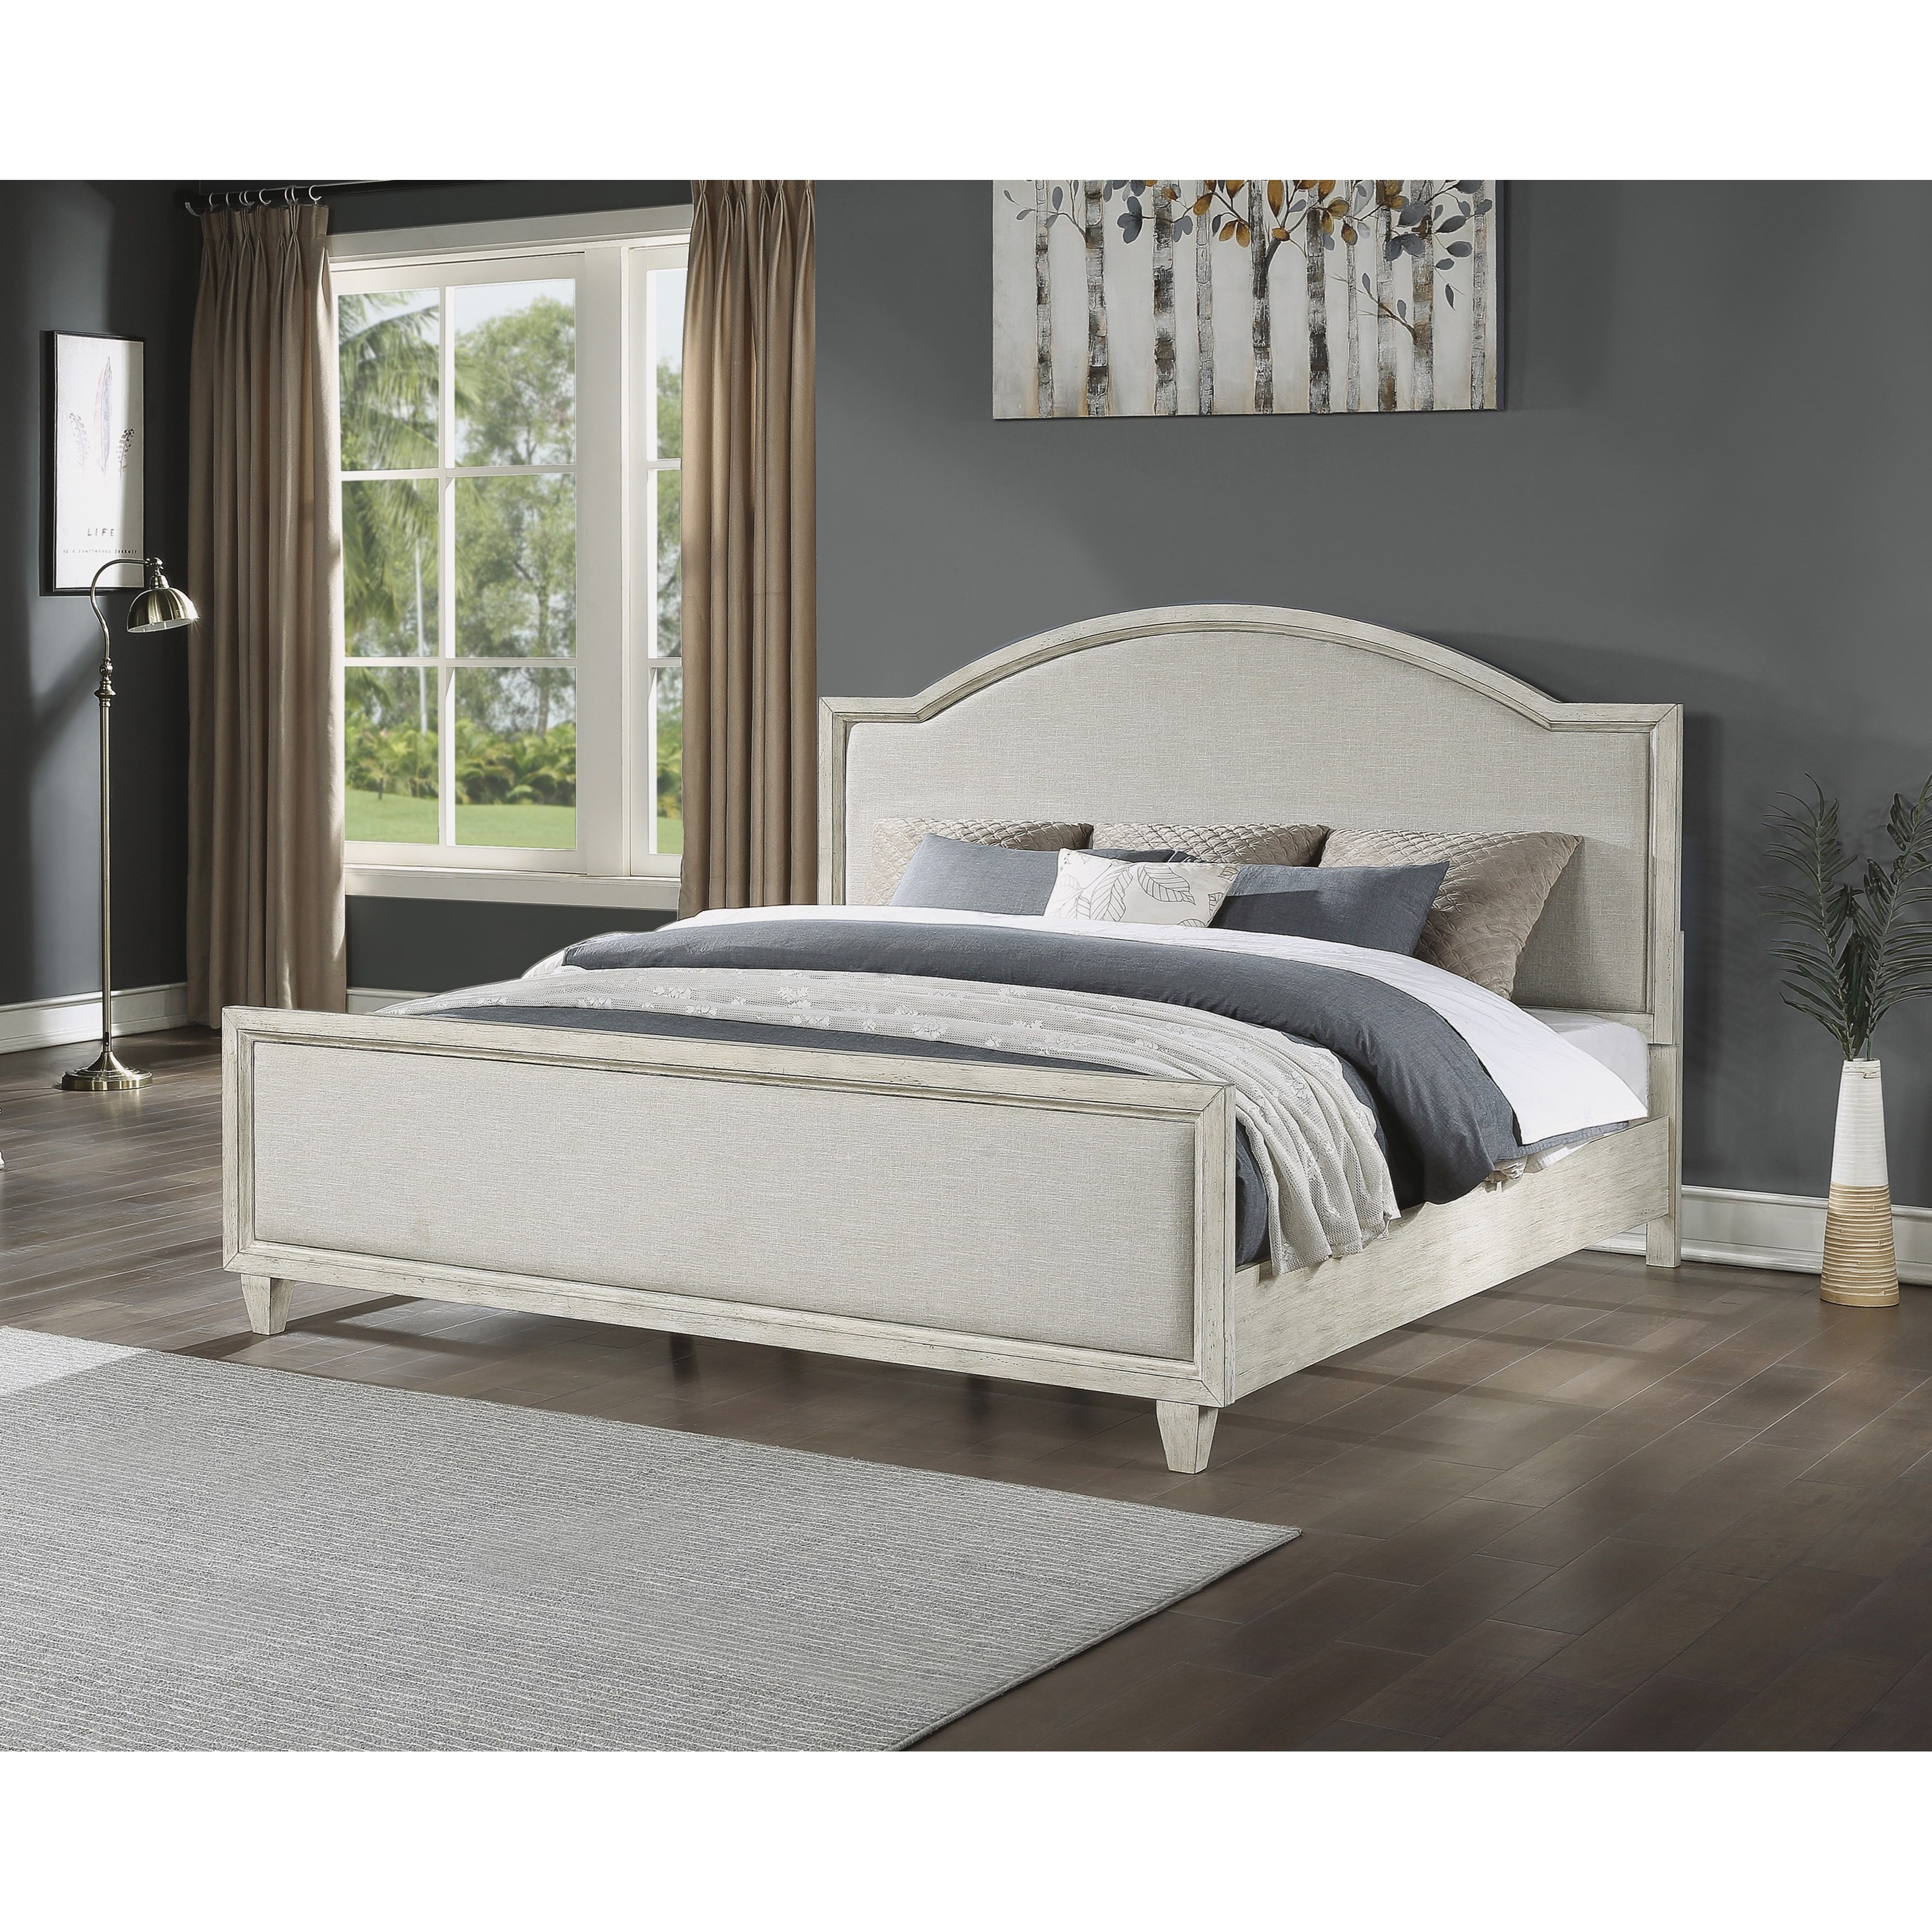 Gladys Gladys Queen Upholstered Bed by Flexsteel Wynwood Collection at Morris Home